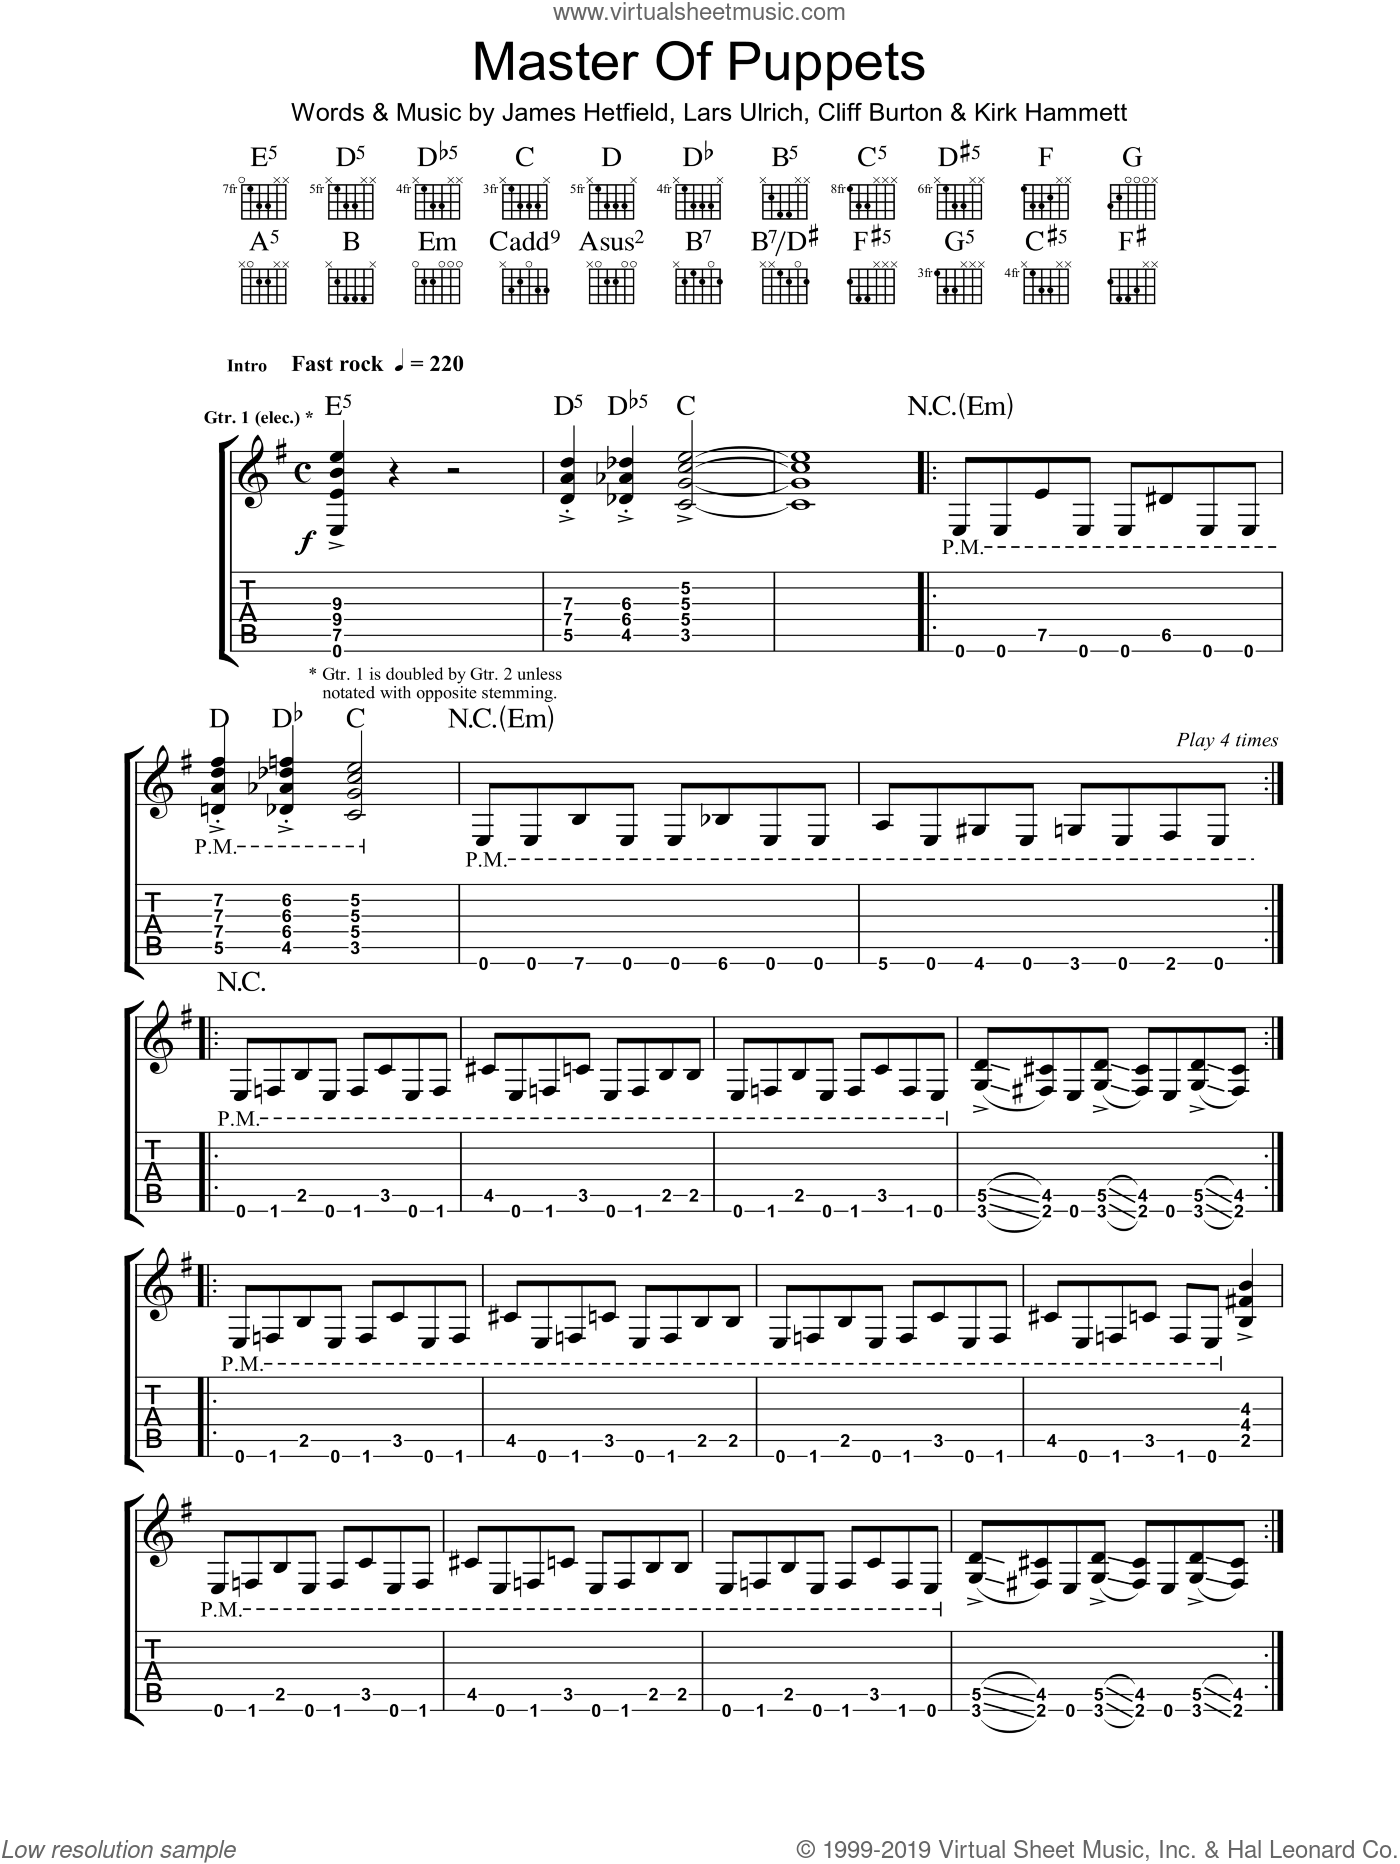 Master Of Puppets sheet music for guitar (tablature) by Lars Ulrich, Cliff Burton and James Hetfield. Score Image Preview.